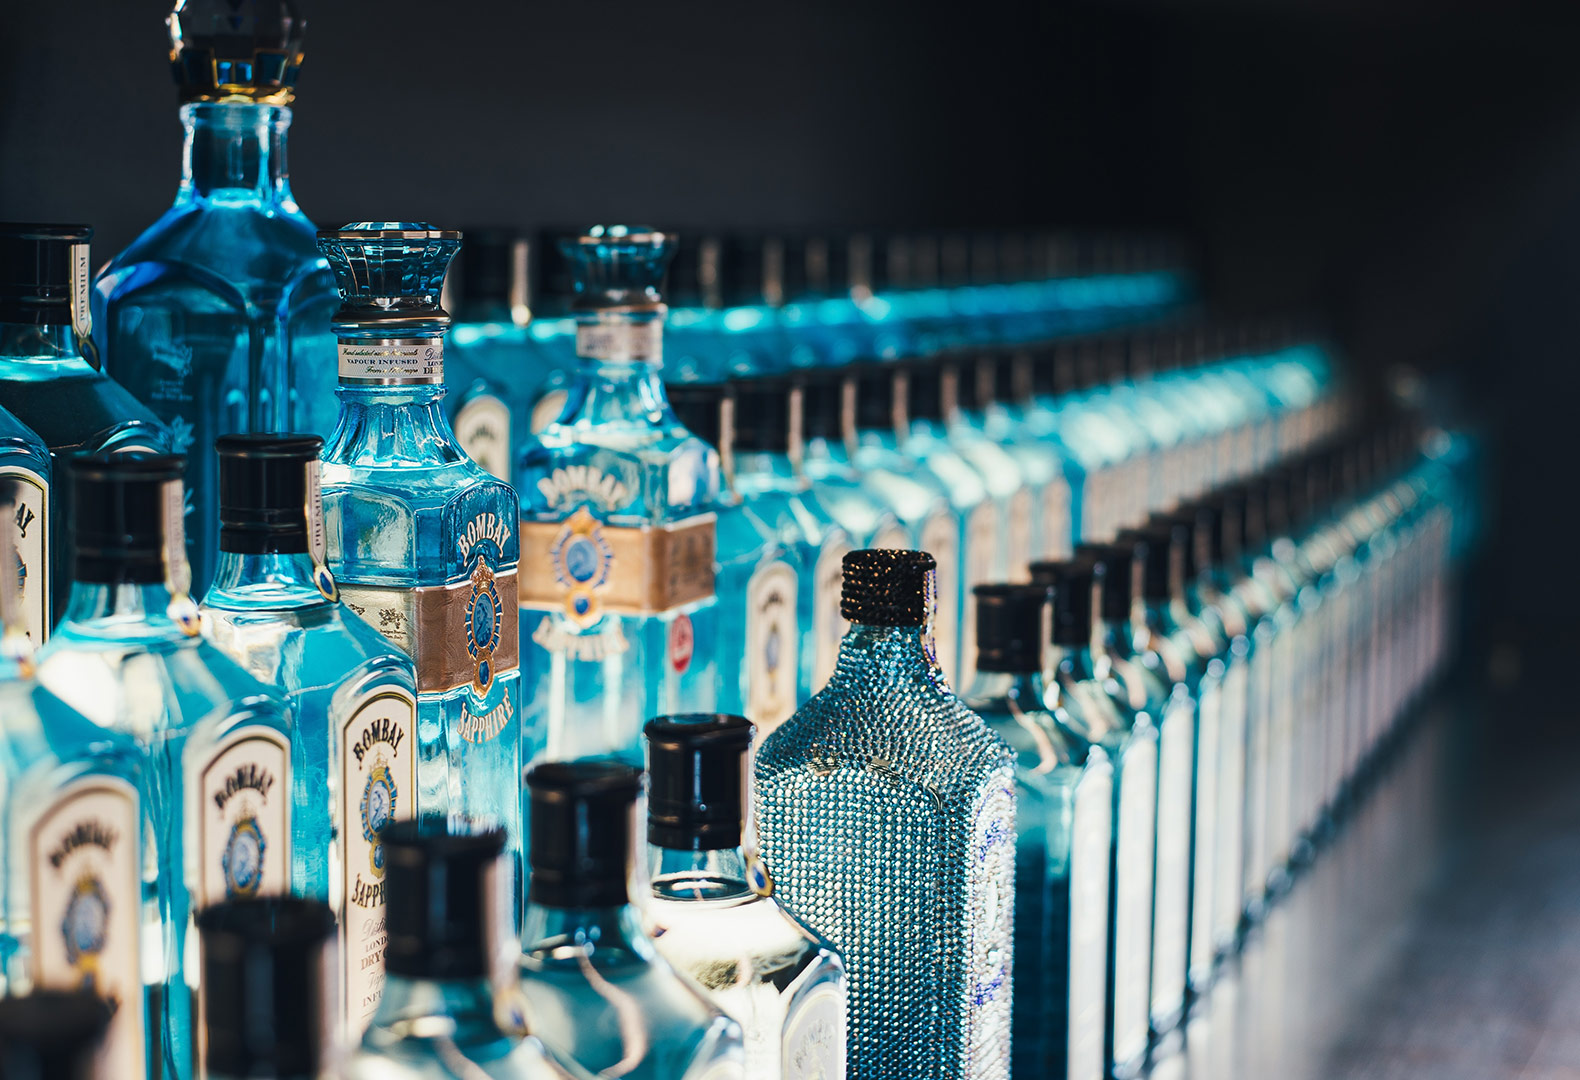 long bar of bottles of gin with great lighting